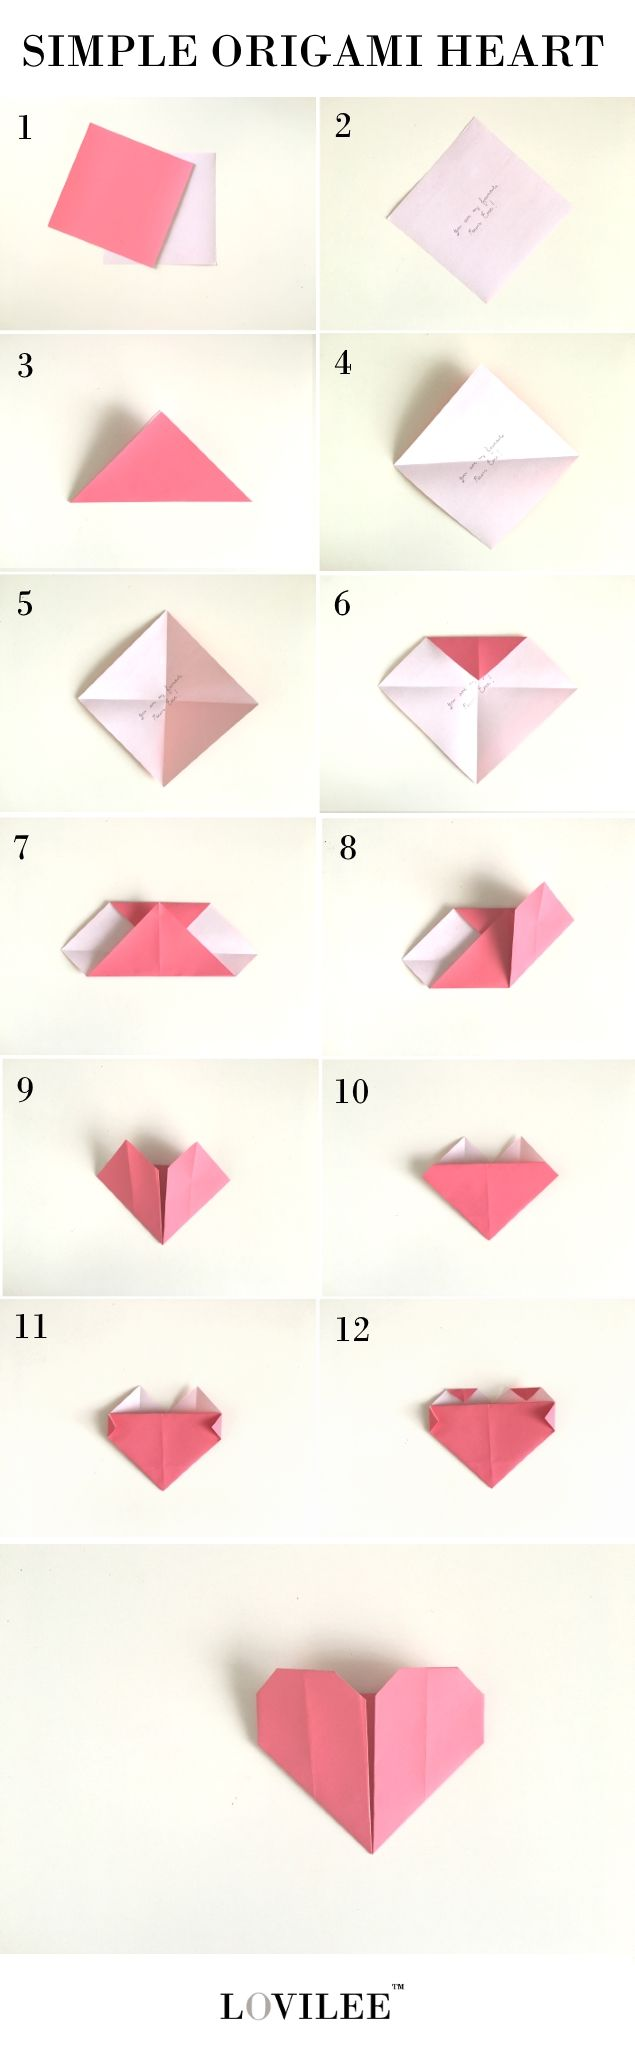 Simple origami heart step by step instructions